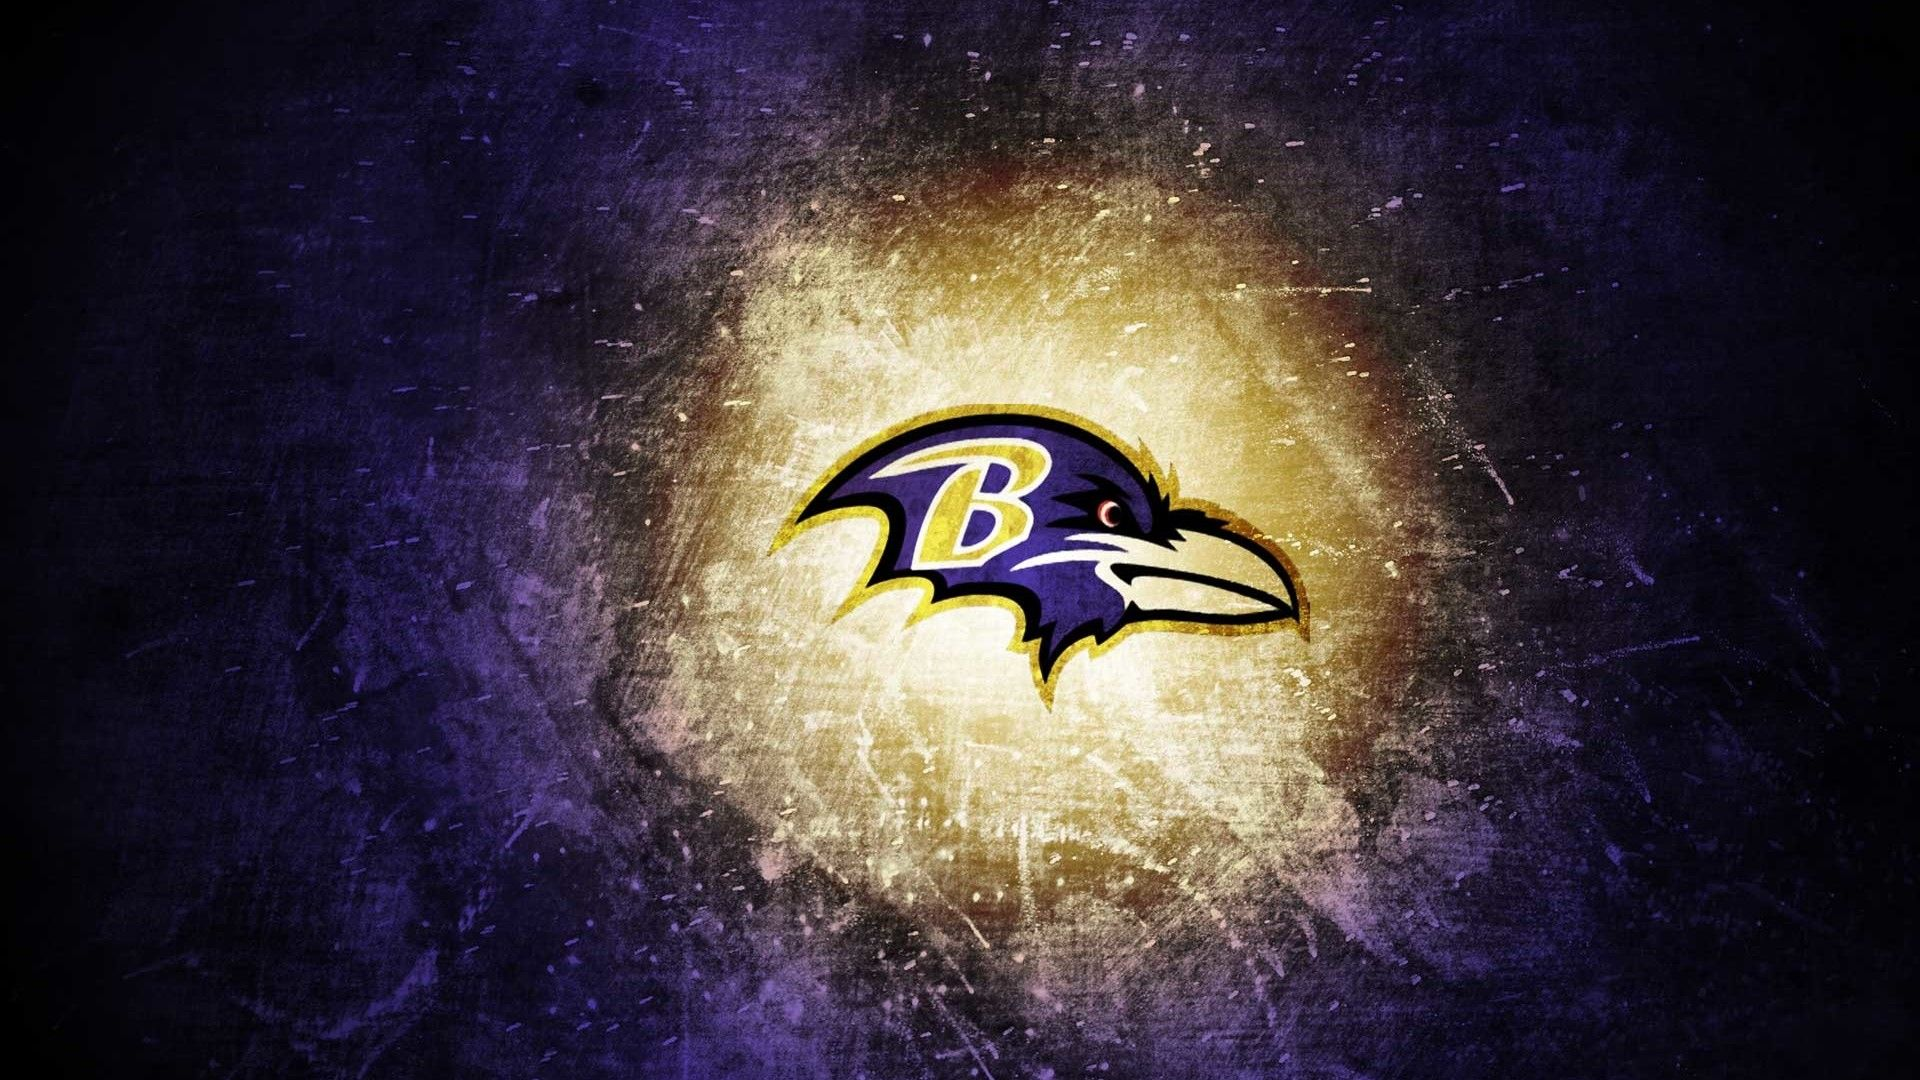 Undefined Ravens Wallpaper 43 Wallpapers Adorable Wallpapers Baltimore Ravens Raven Hd Wallpaper